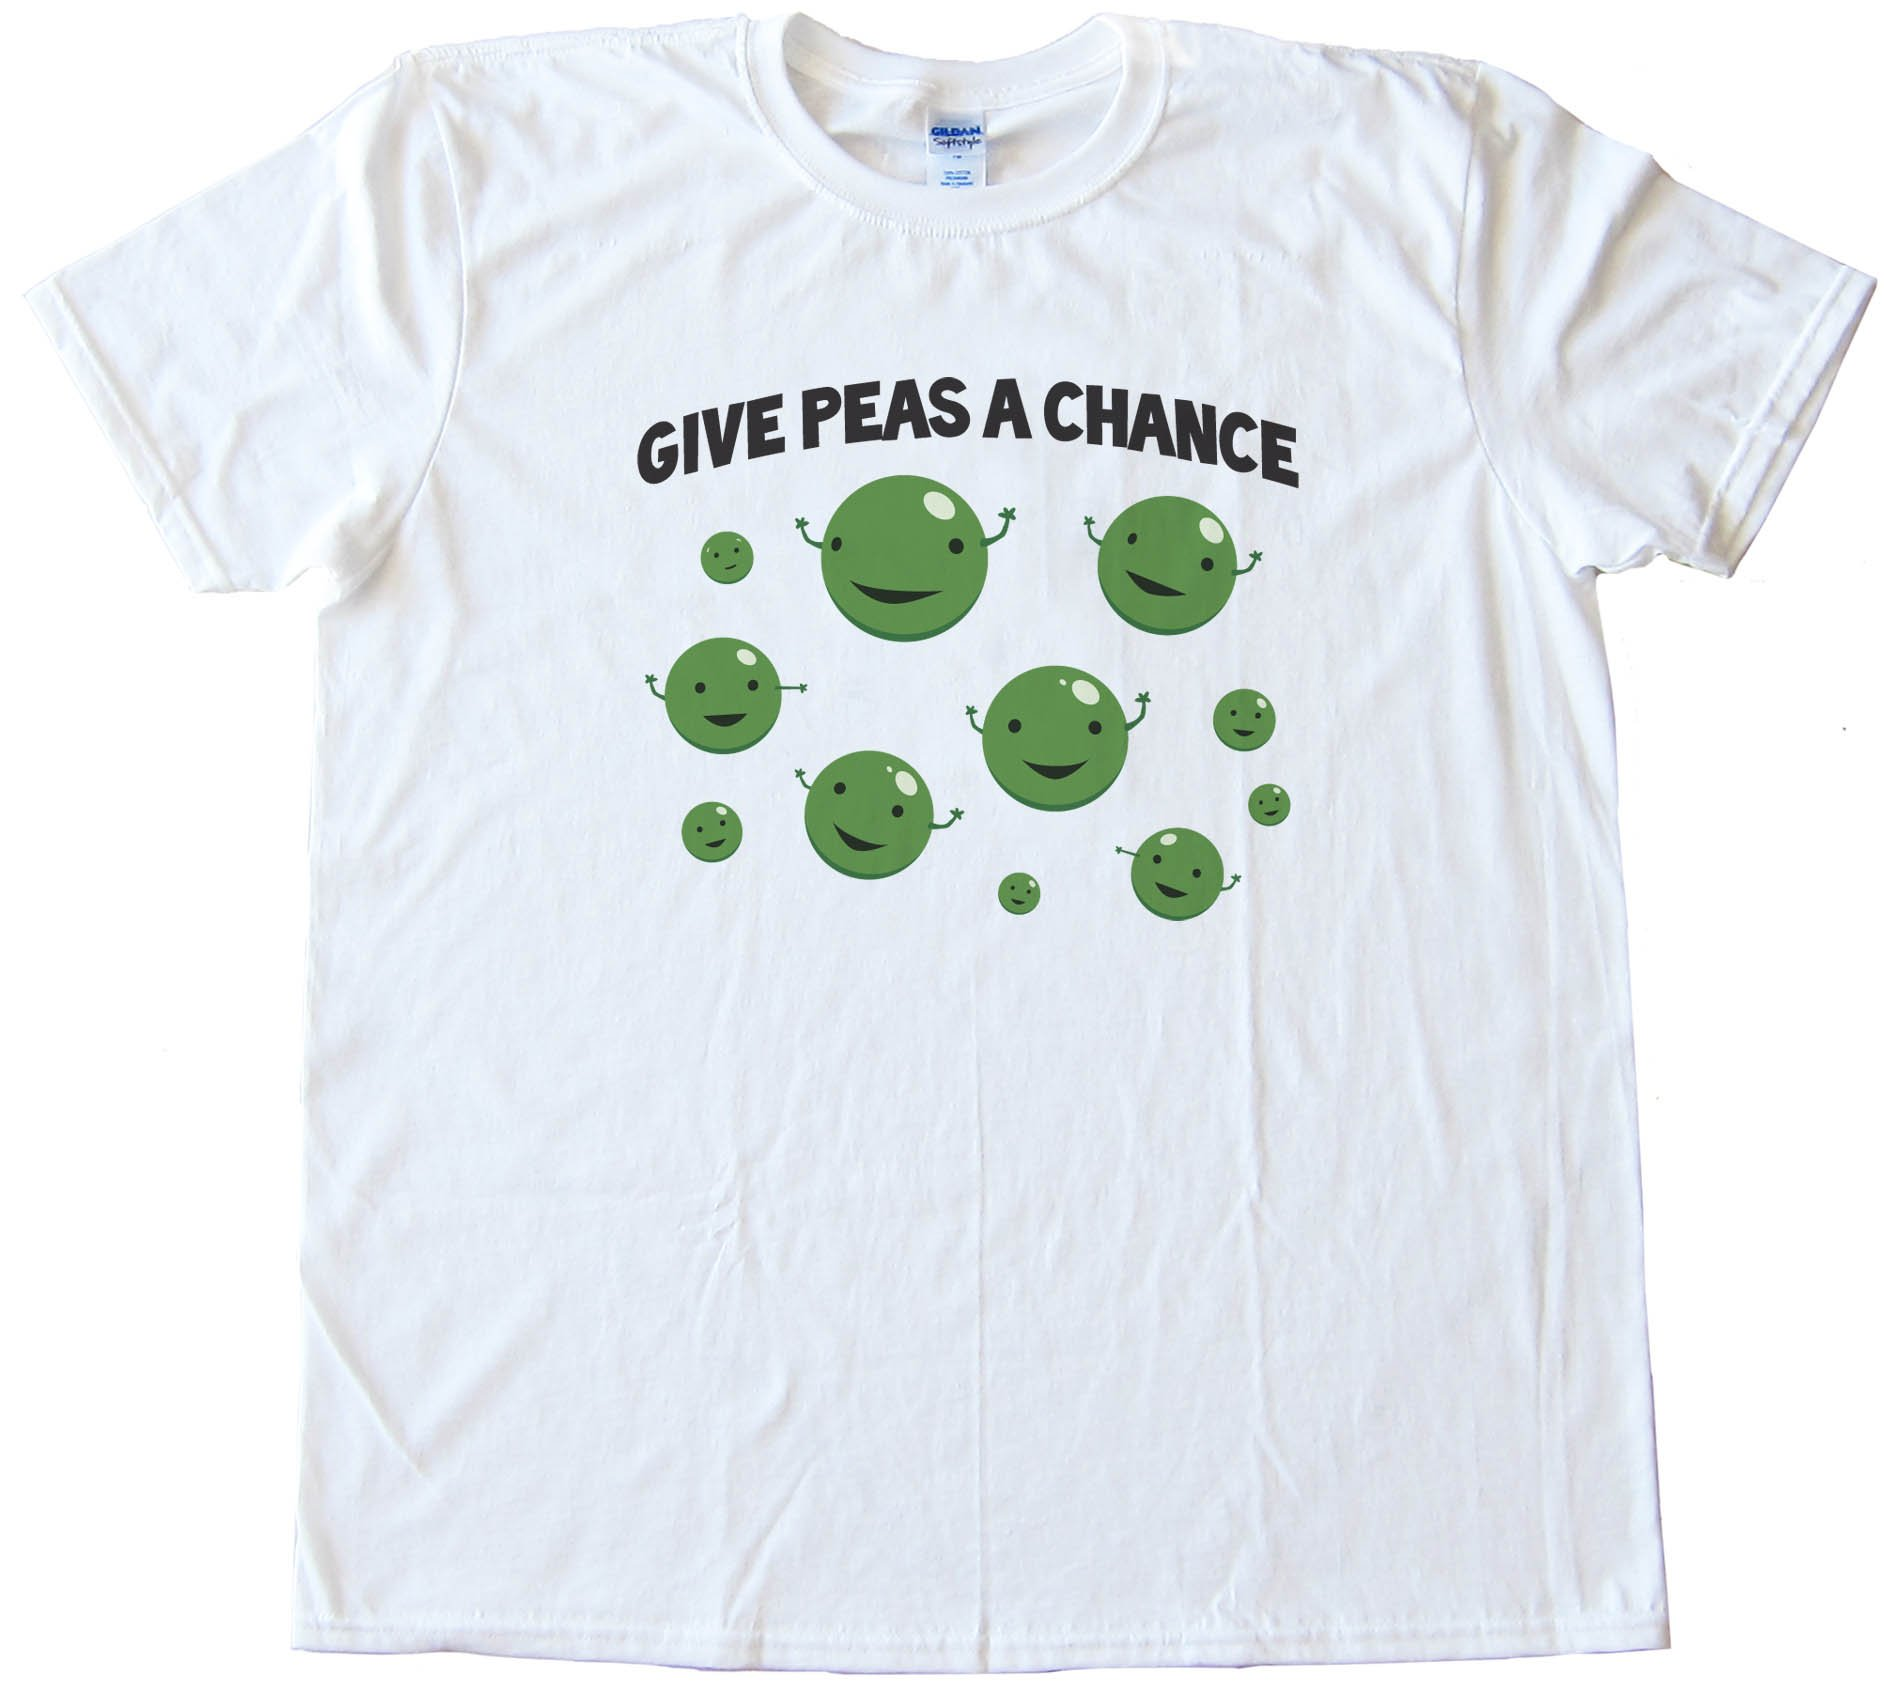 Give Peas A Chance -Tee Shirt